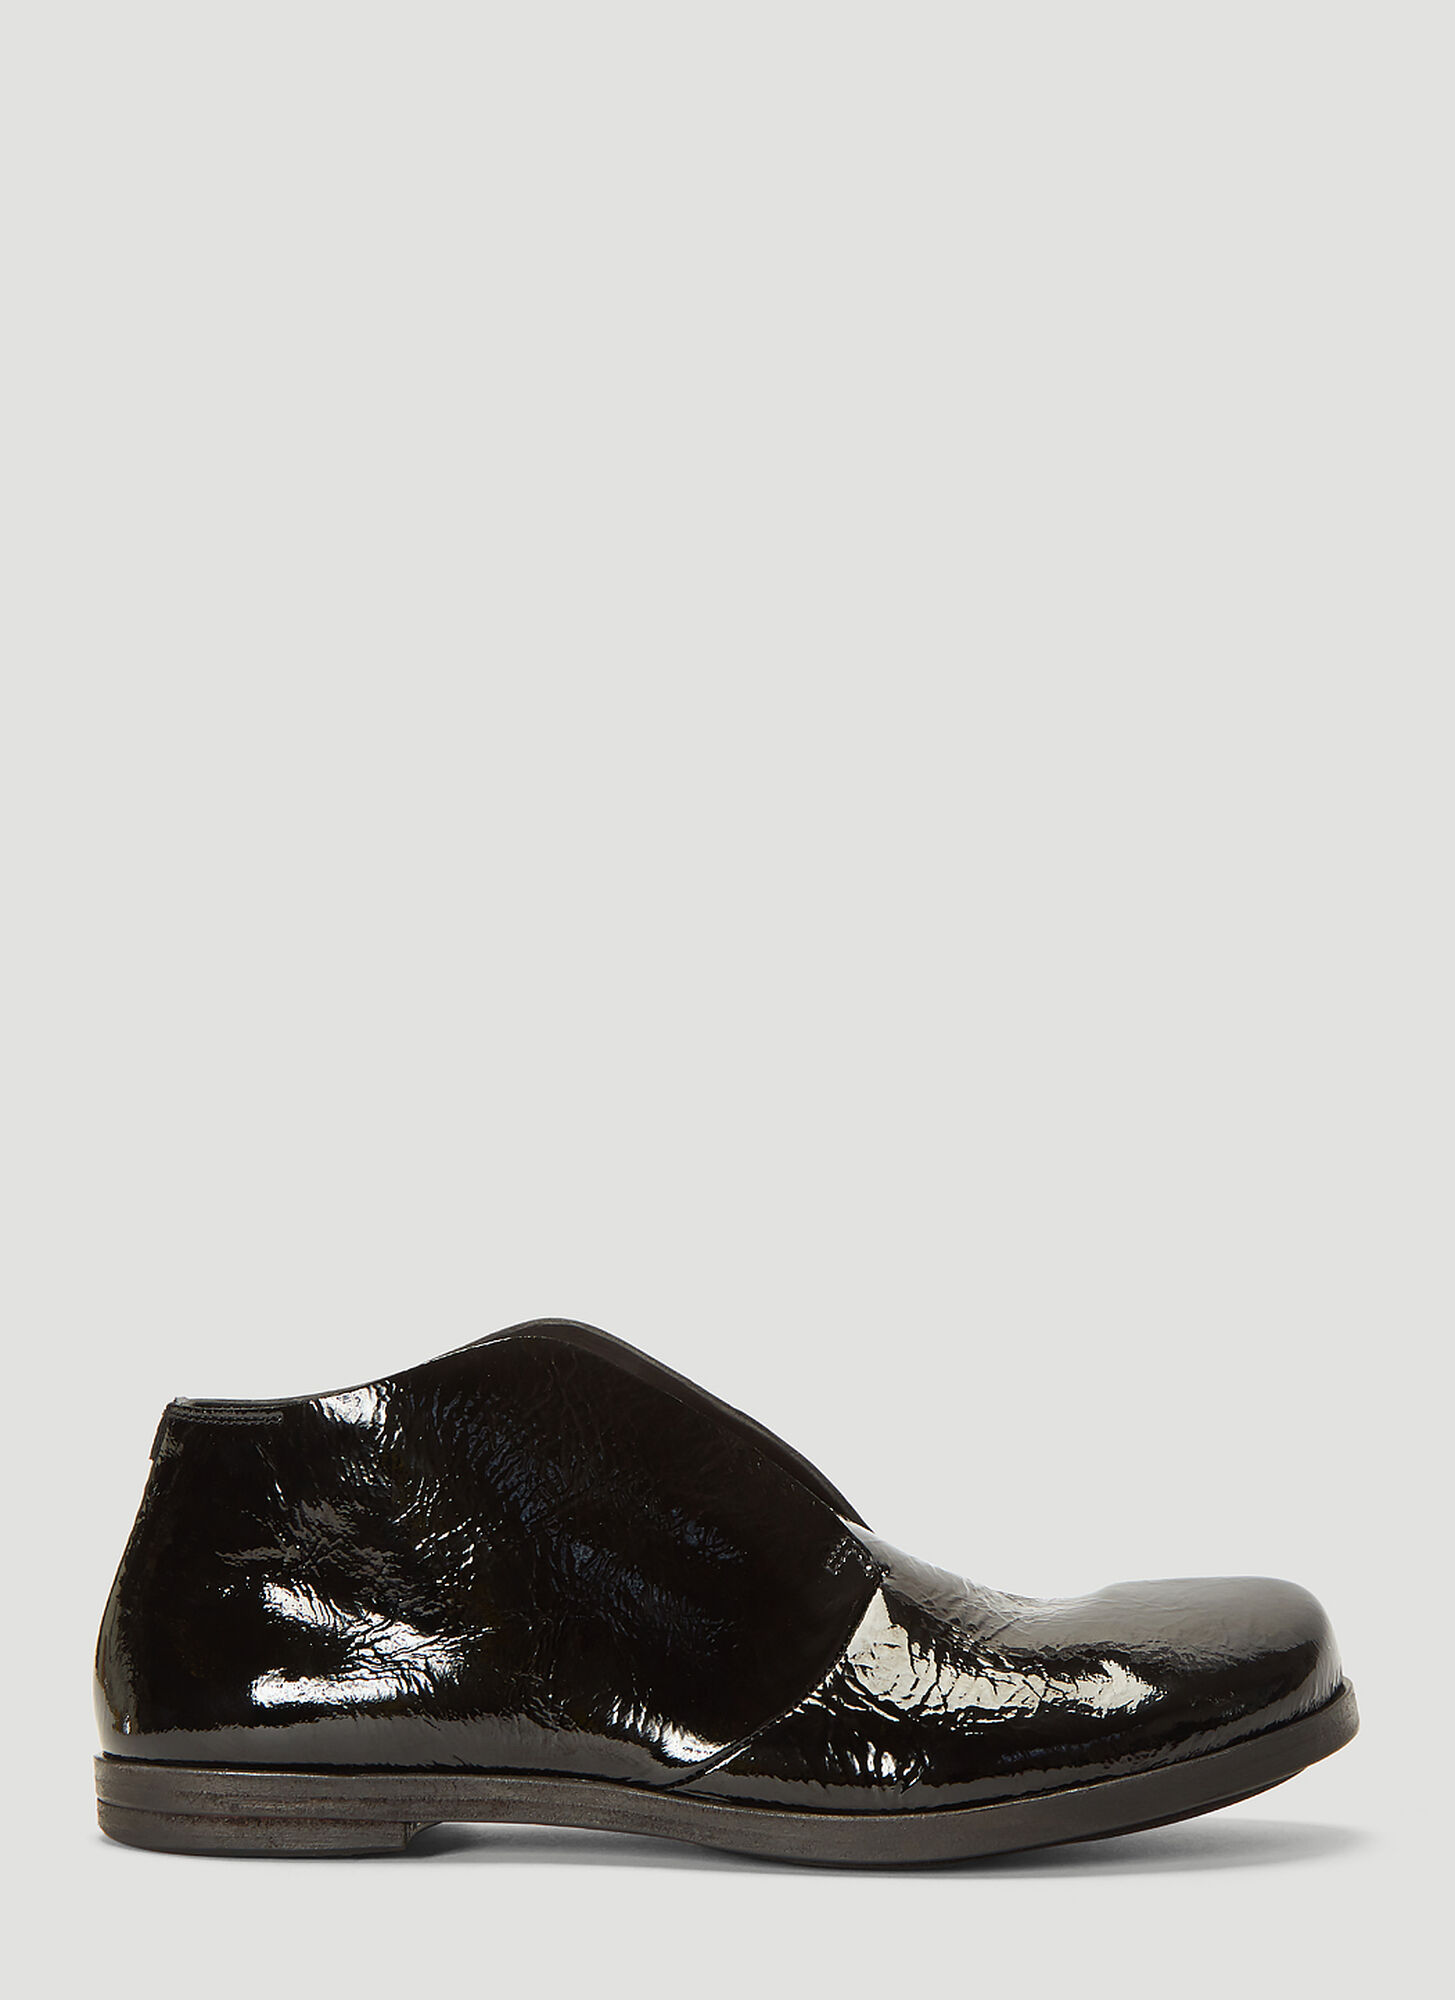 Marsell Listello Shoe in Black